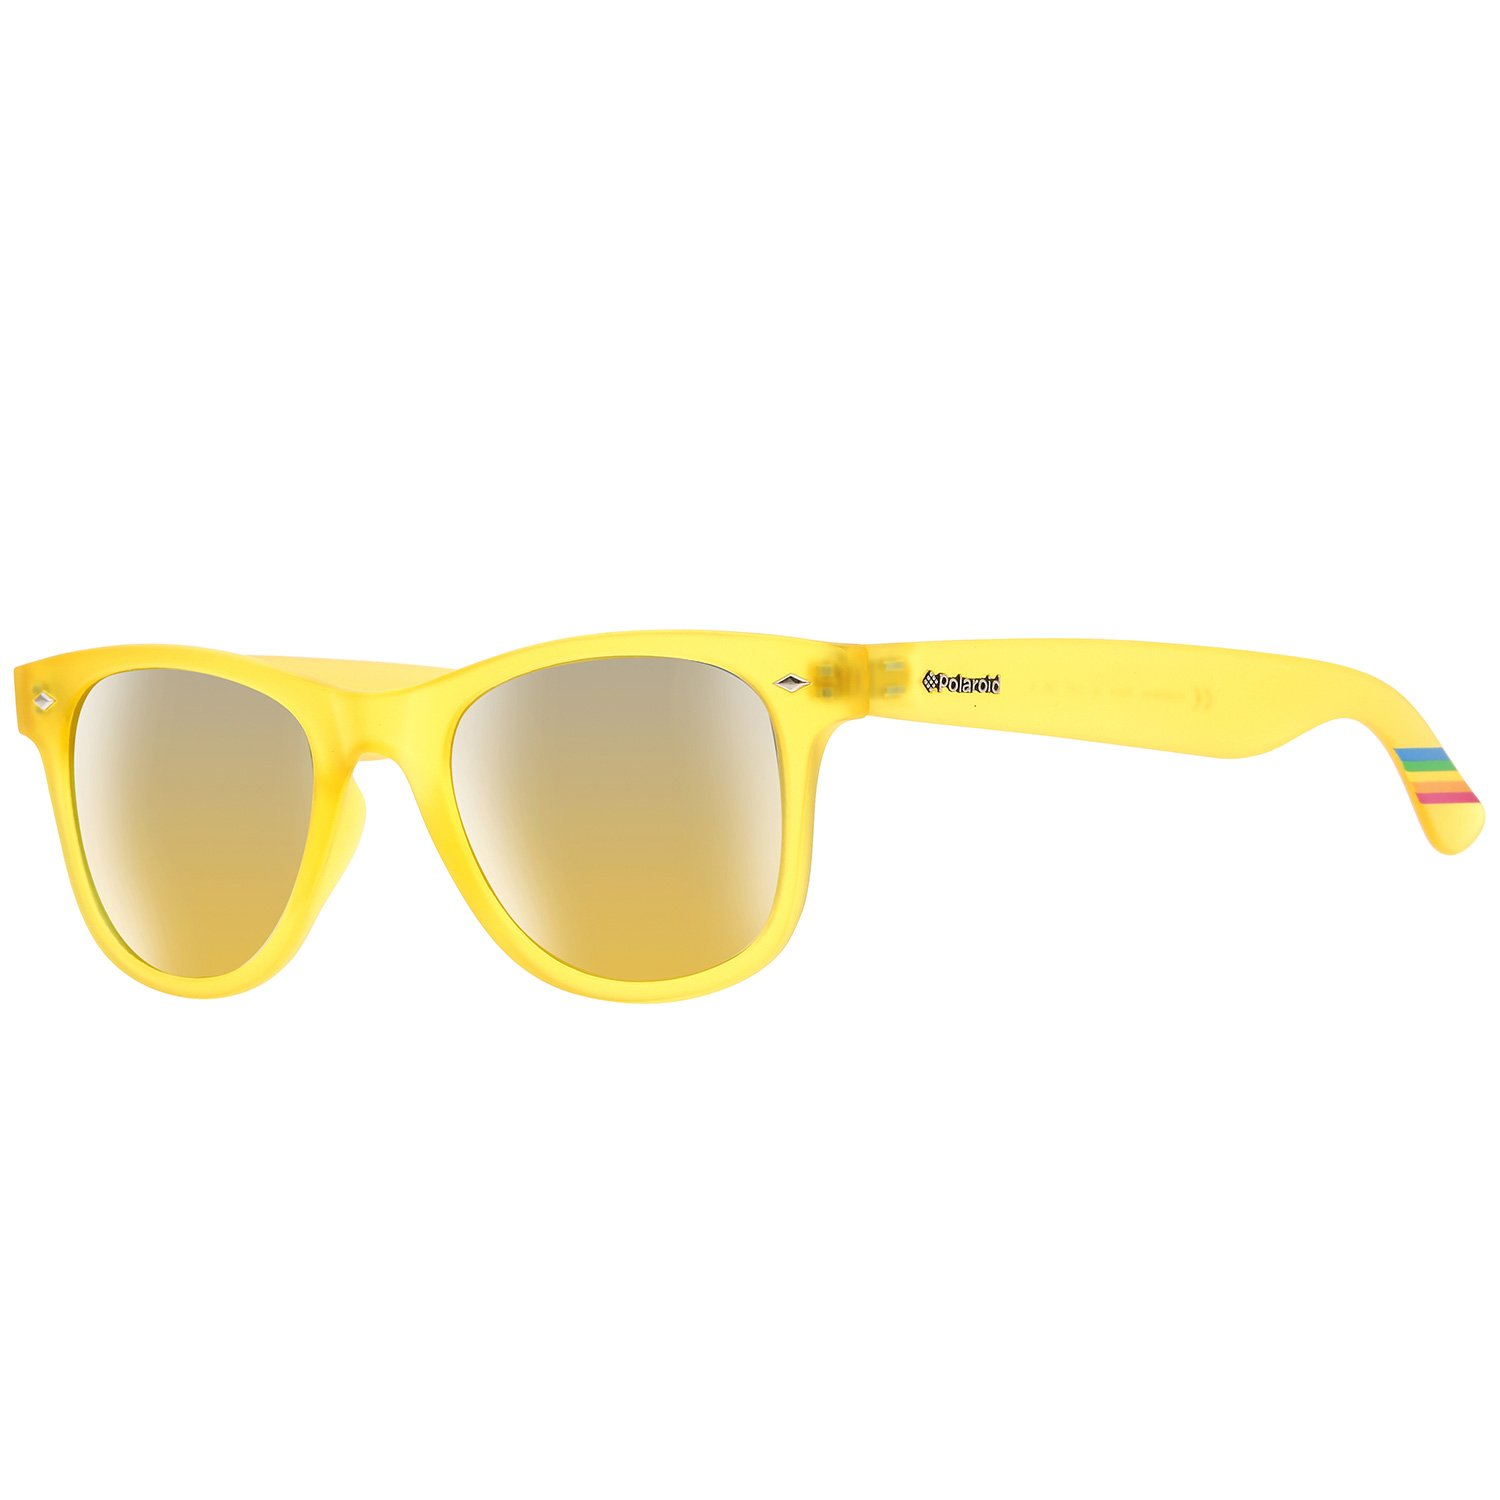 Polaroid 6009/s PVI LM Gafas de sol, Amarillo (Transparent Yellow/Grey Goldmir Pz), 50 Unisex-Adulto